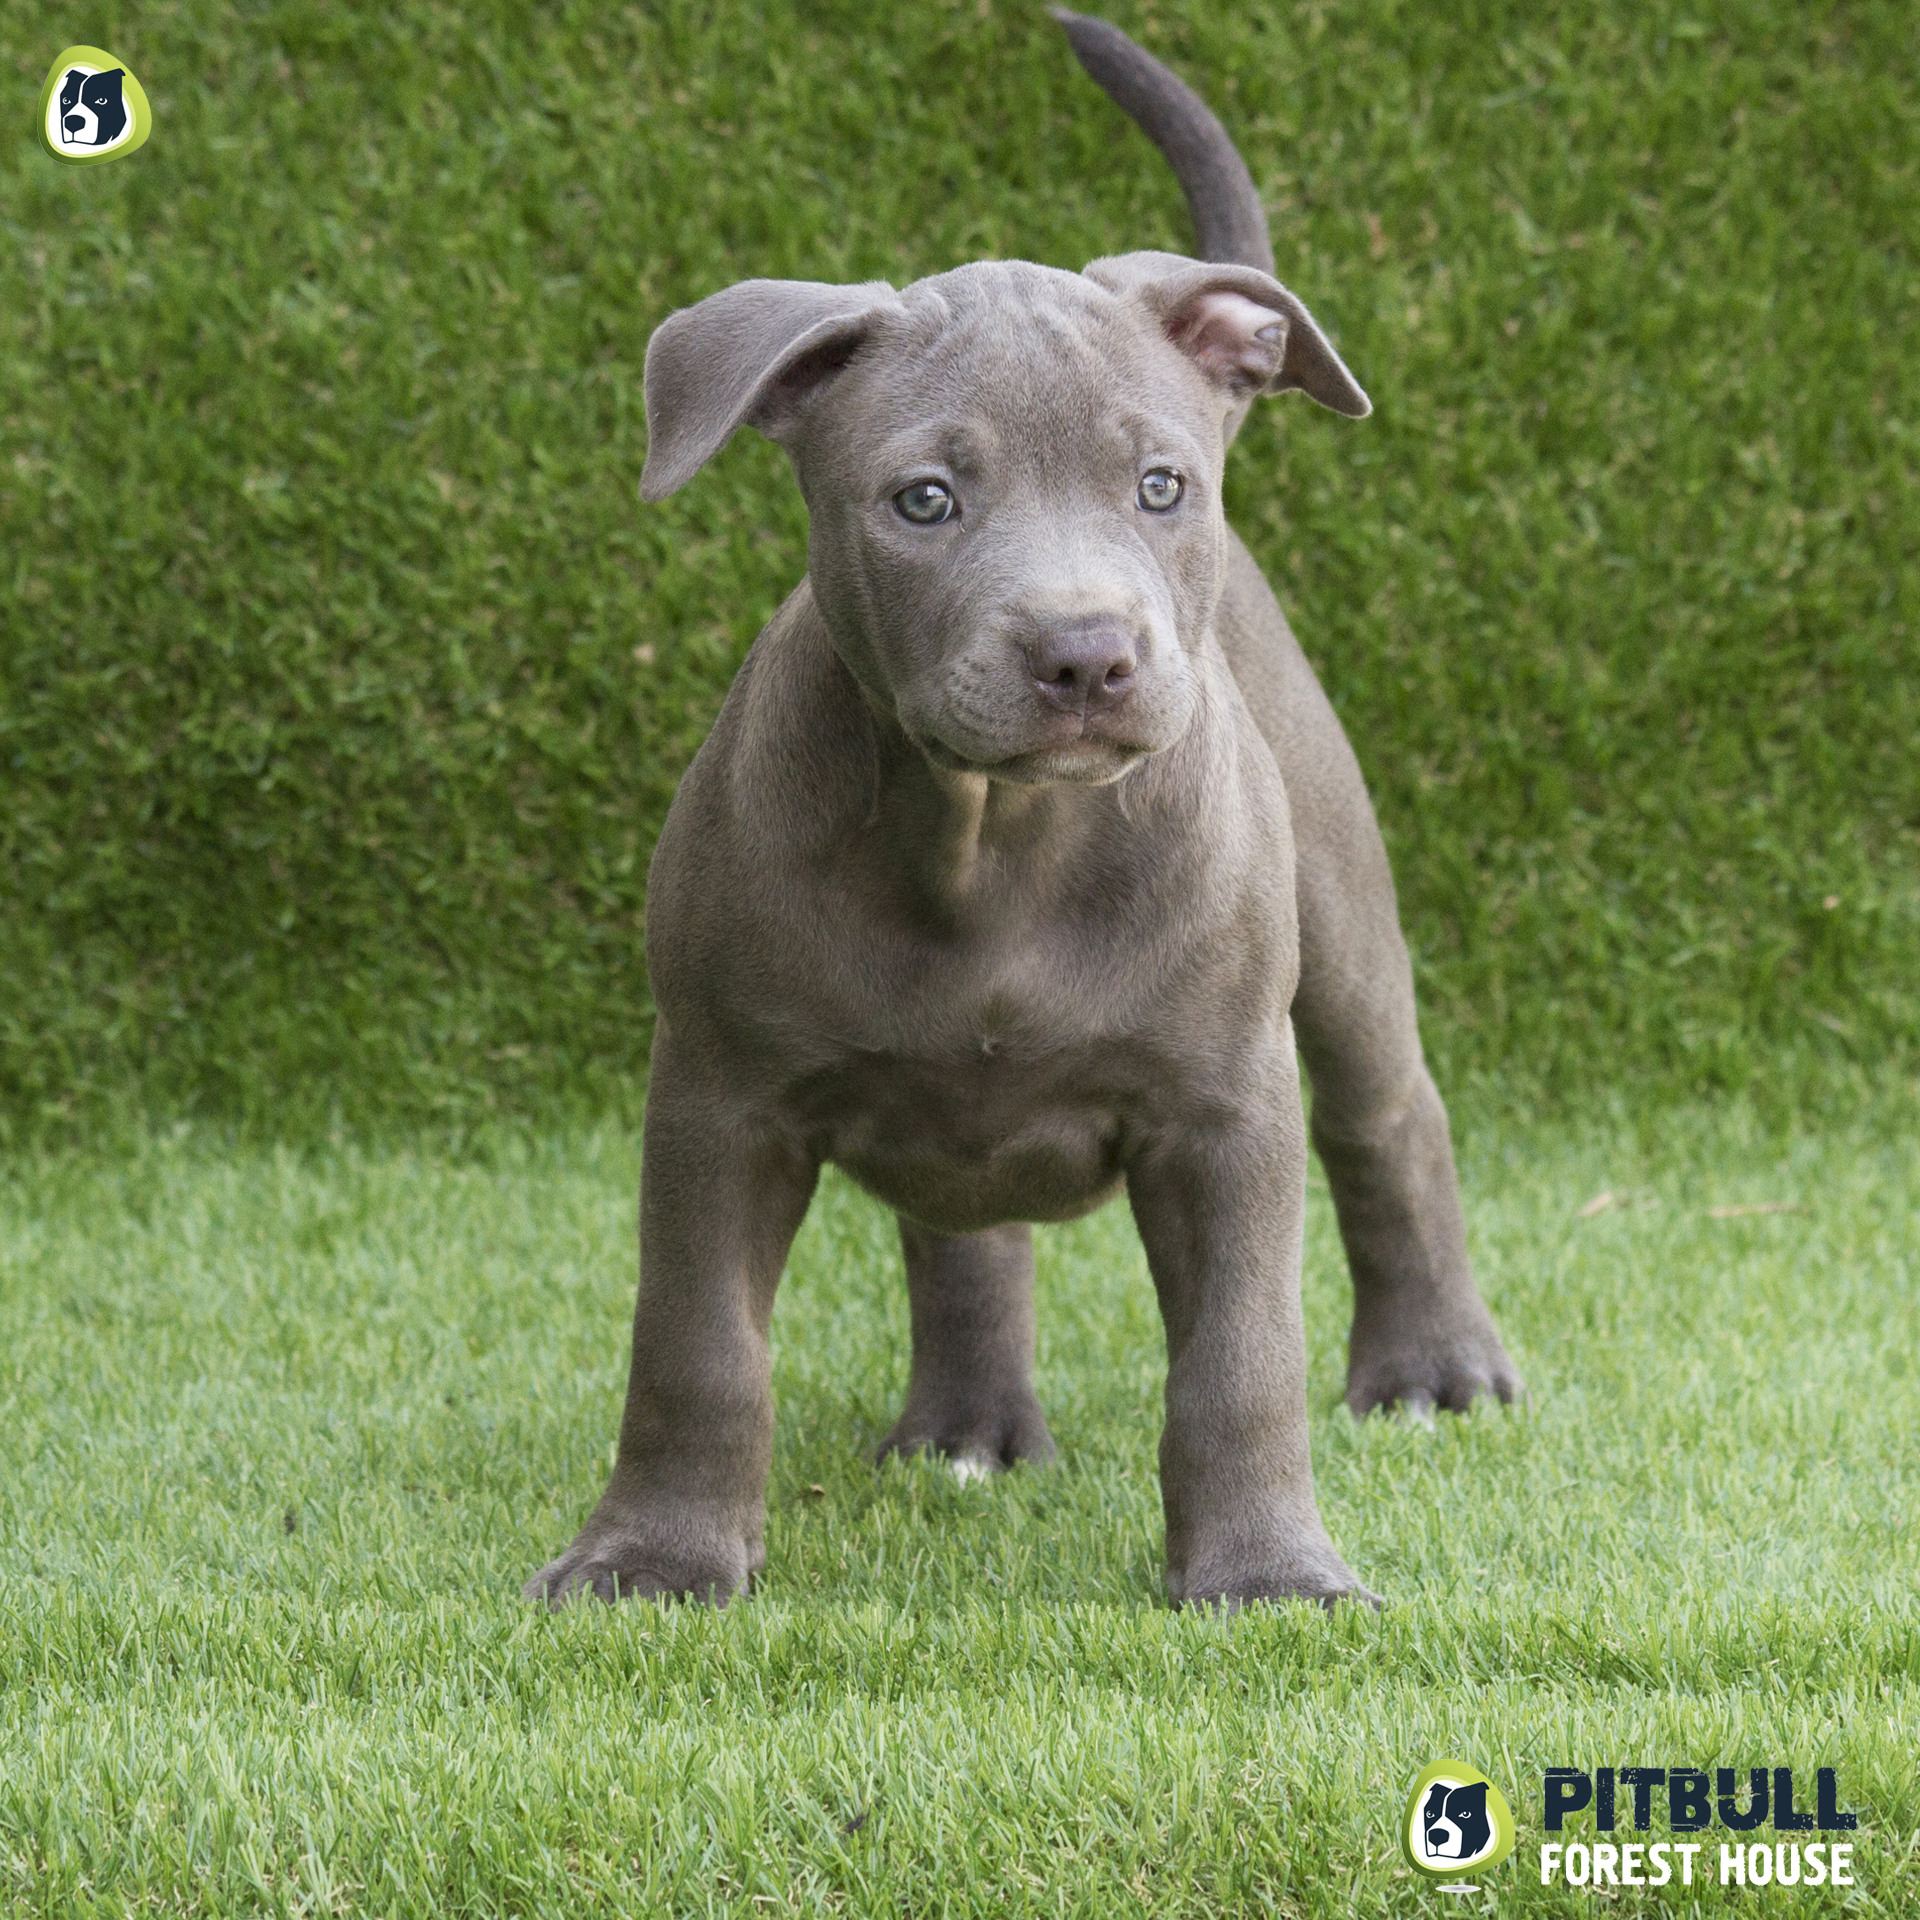 pitbull forest house